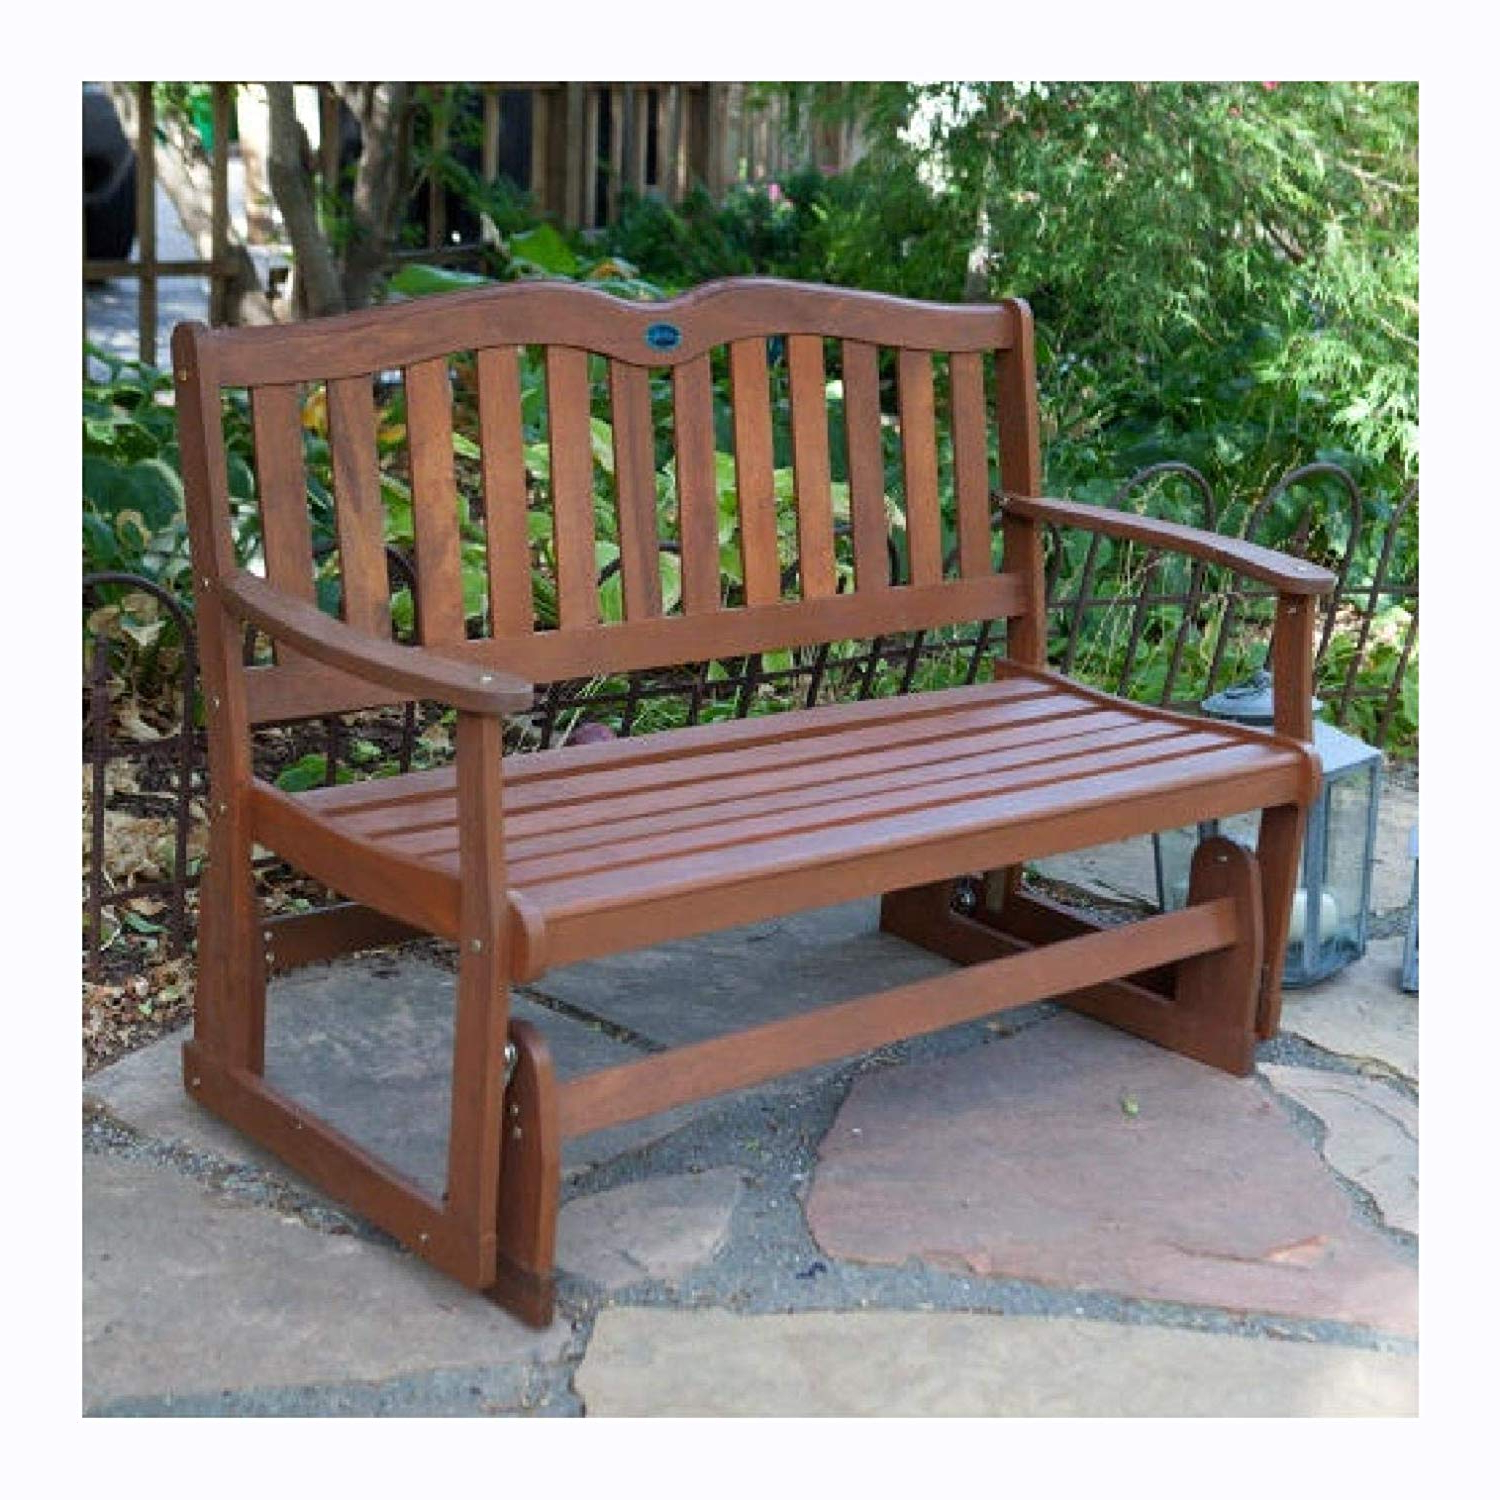 Well Known Wood Garden Benches Intended For Amazon: Garden Benches, 4 Ft Outdoor Loveseat Garden (Gallery 3 of 30)